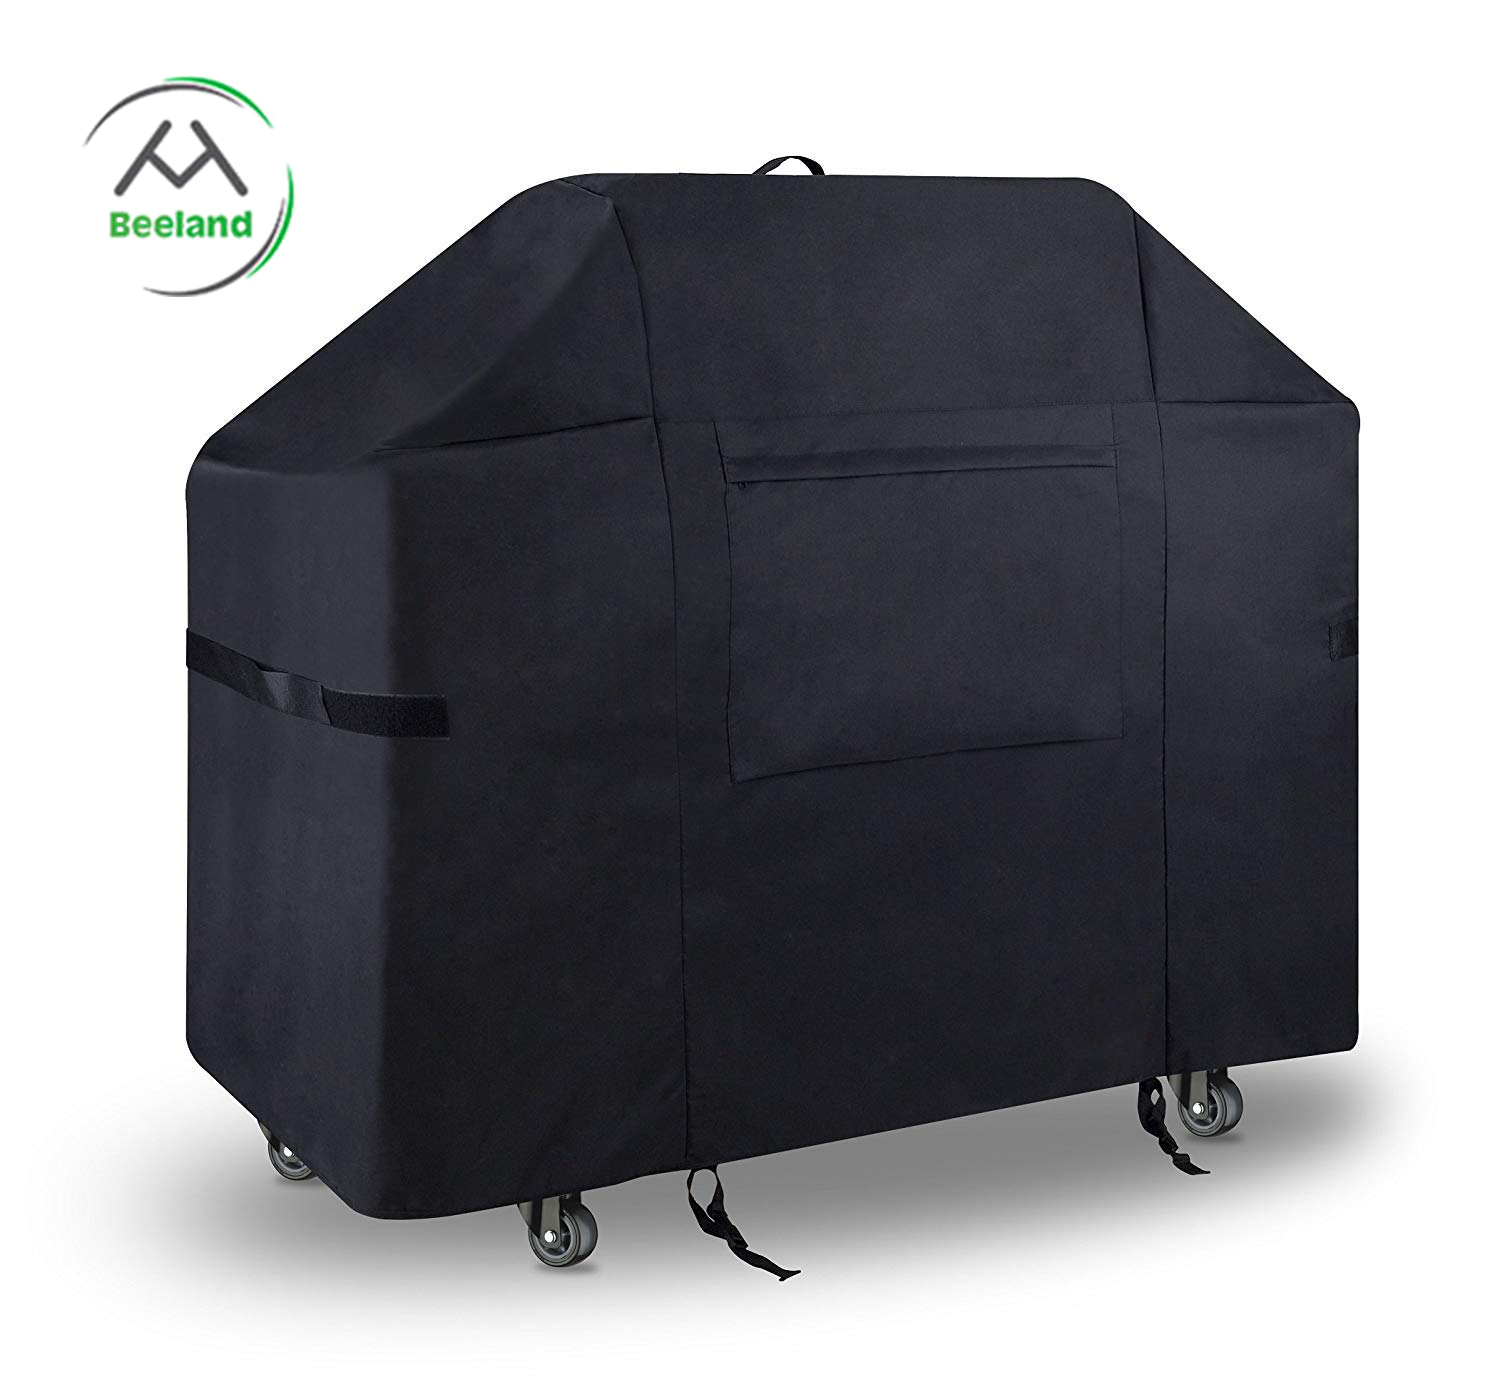 Waterproof 600d Oxford Fabric Gas grill cover simple shape Rainproof Barbecue Grill Cover